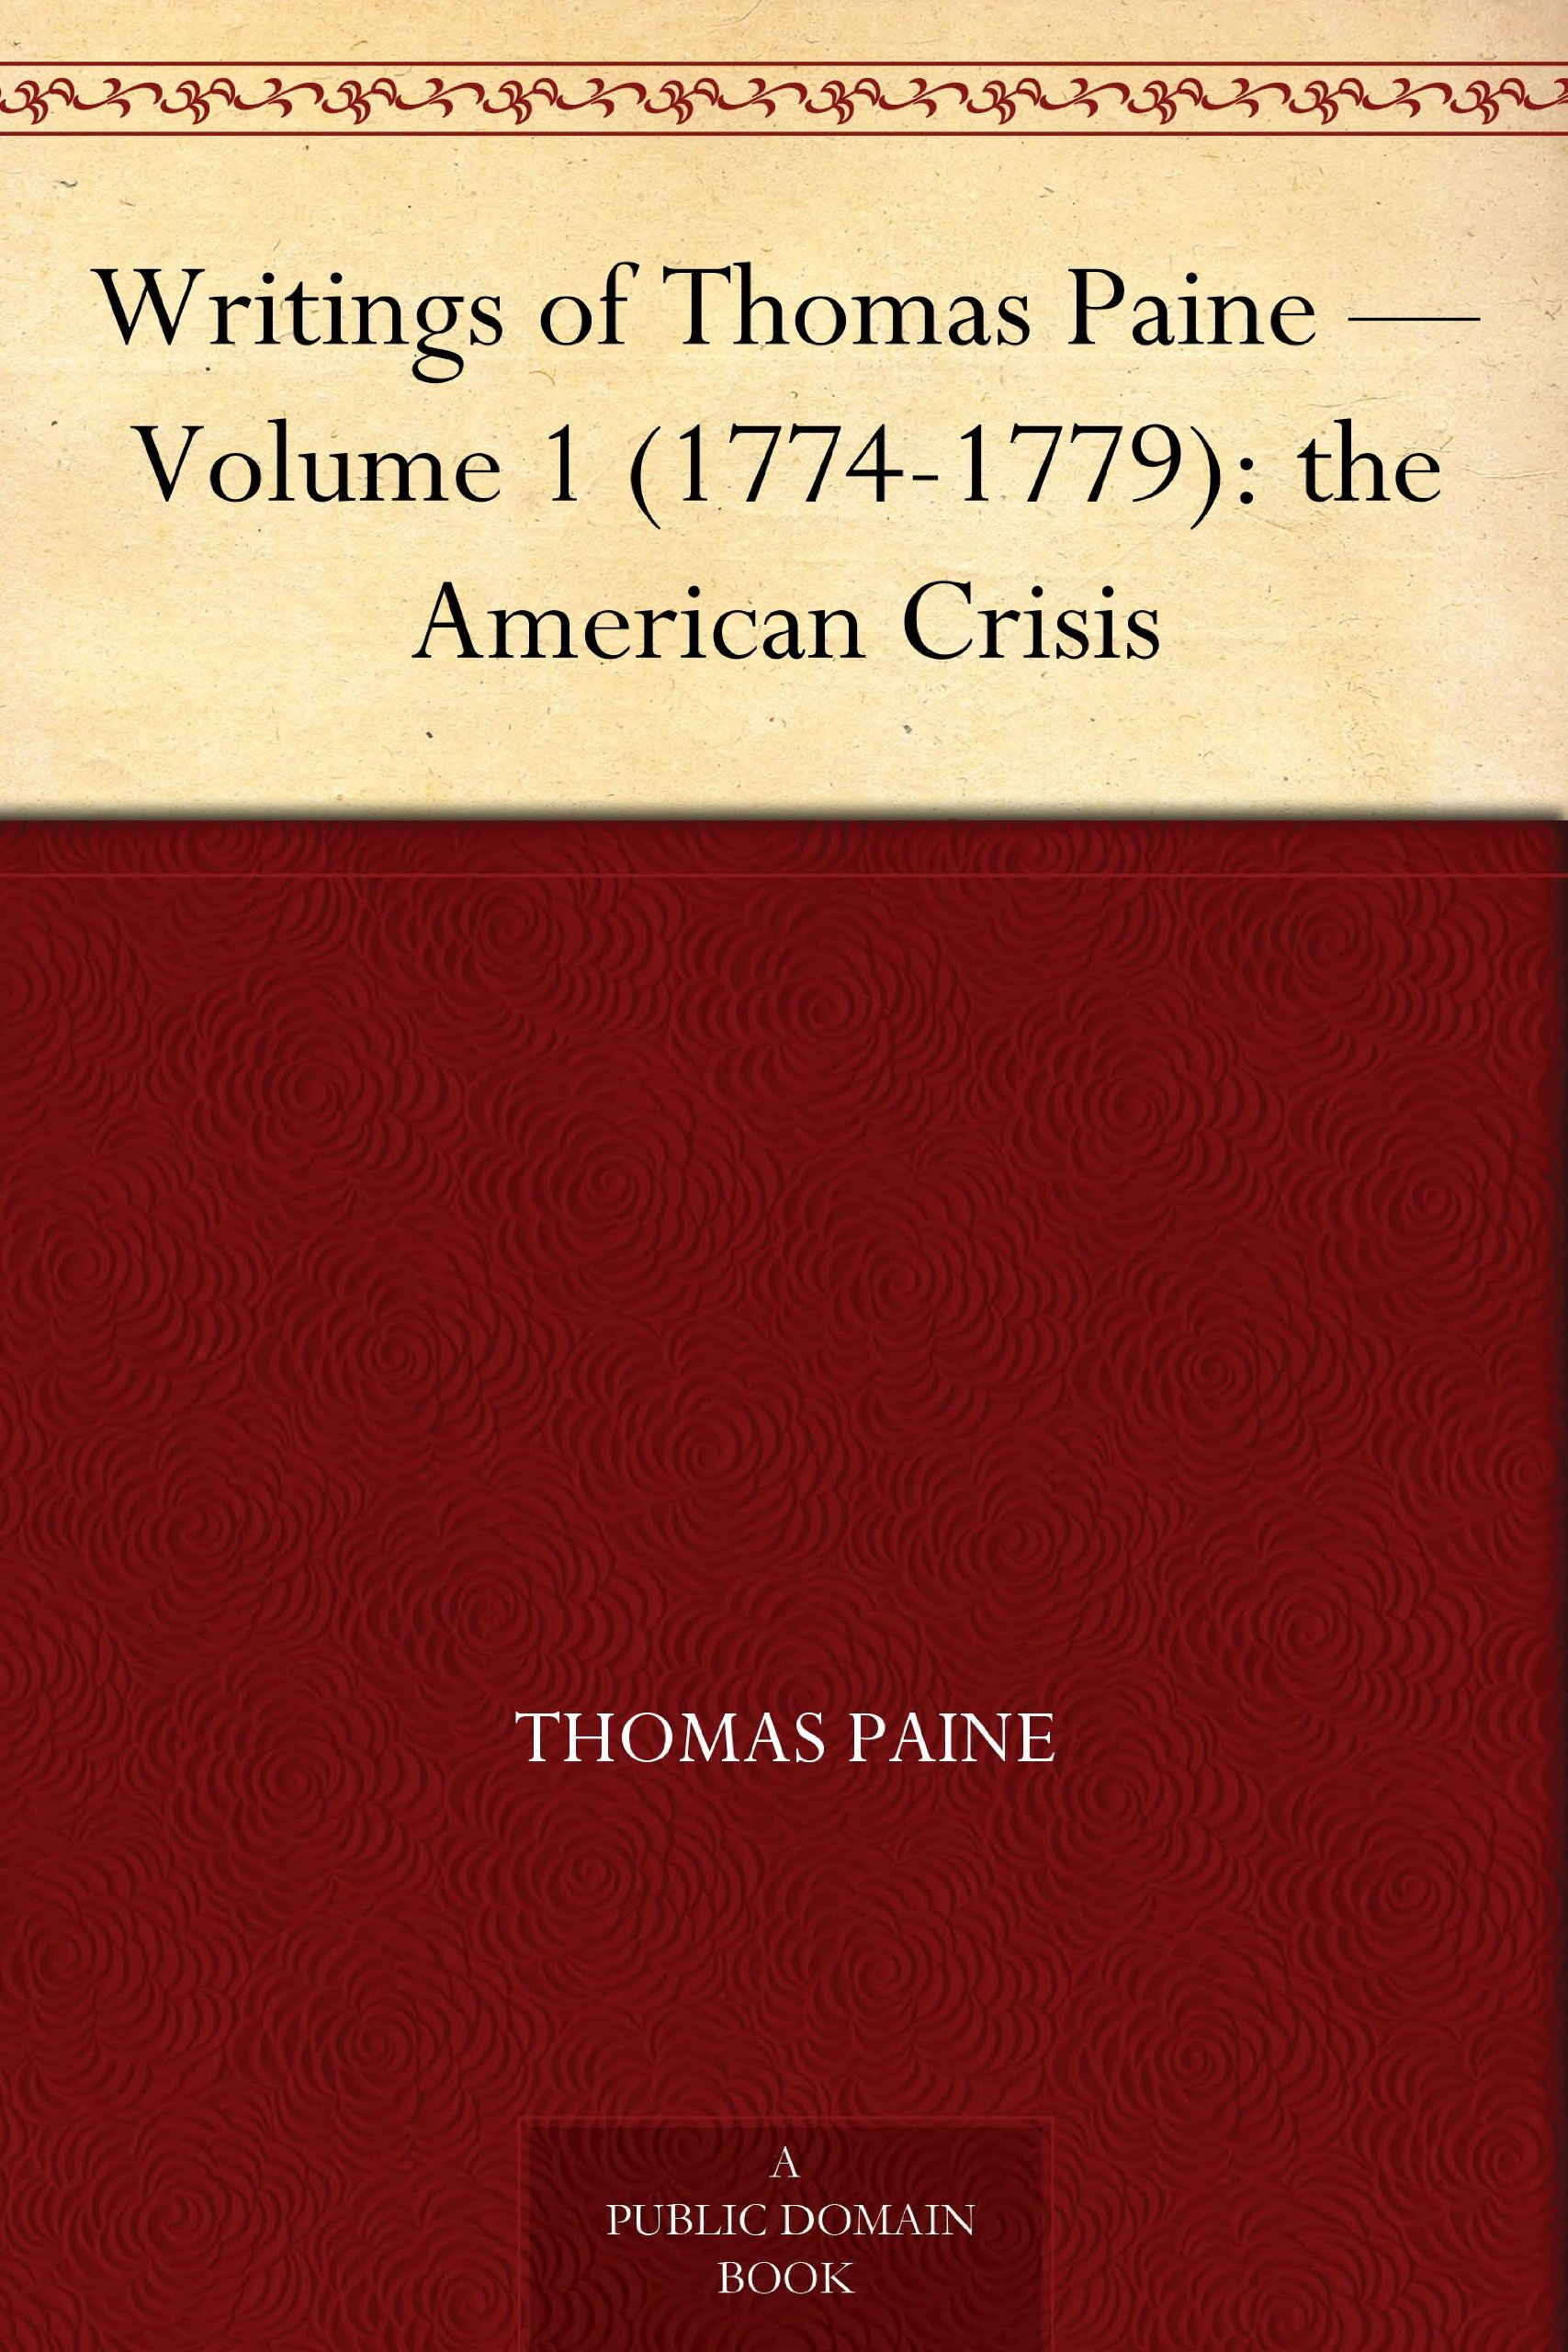 Writings of Thomas Paine - Volume 1 (1774-1779): the American Crisis -  Kindle edition by Thomas Paine, Moncure Daniel Conway.